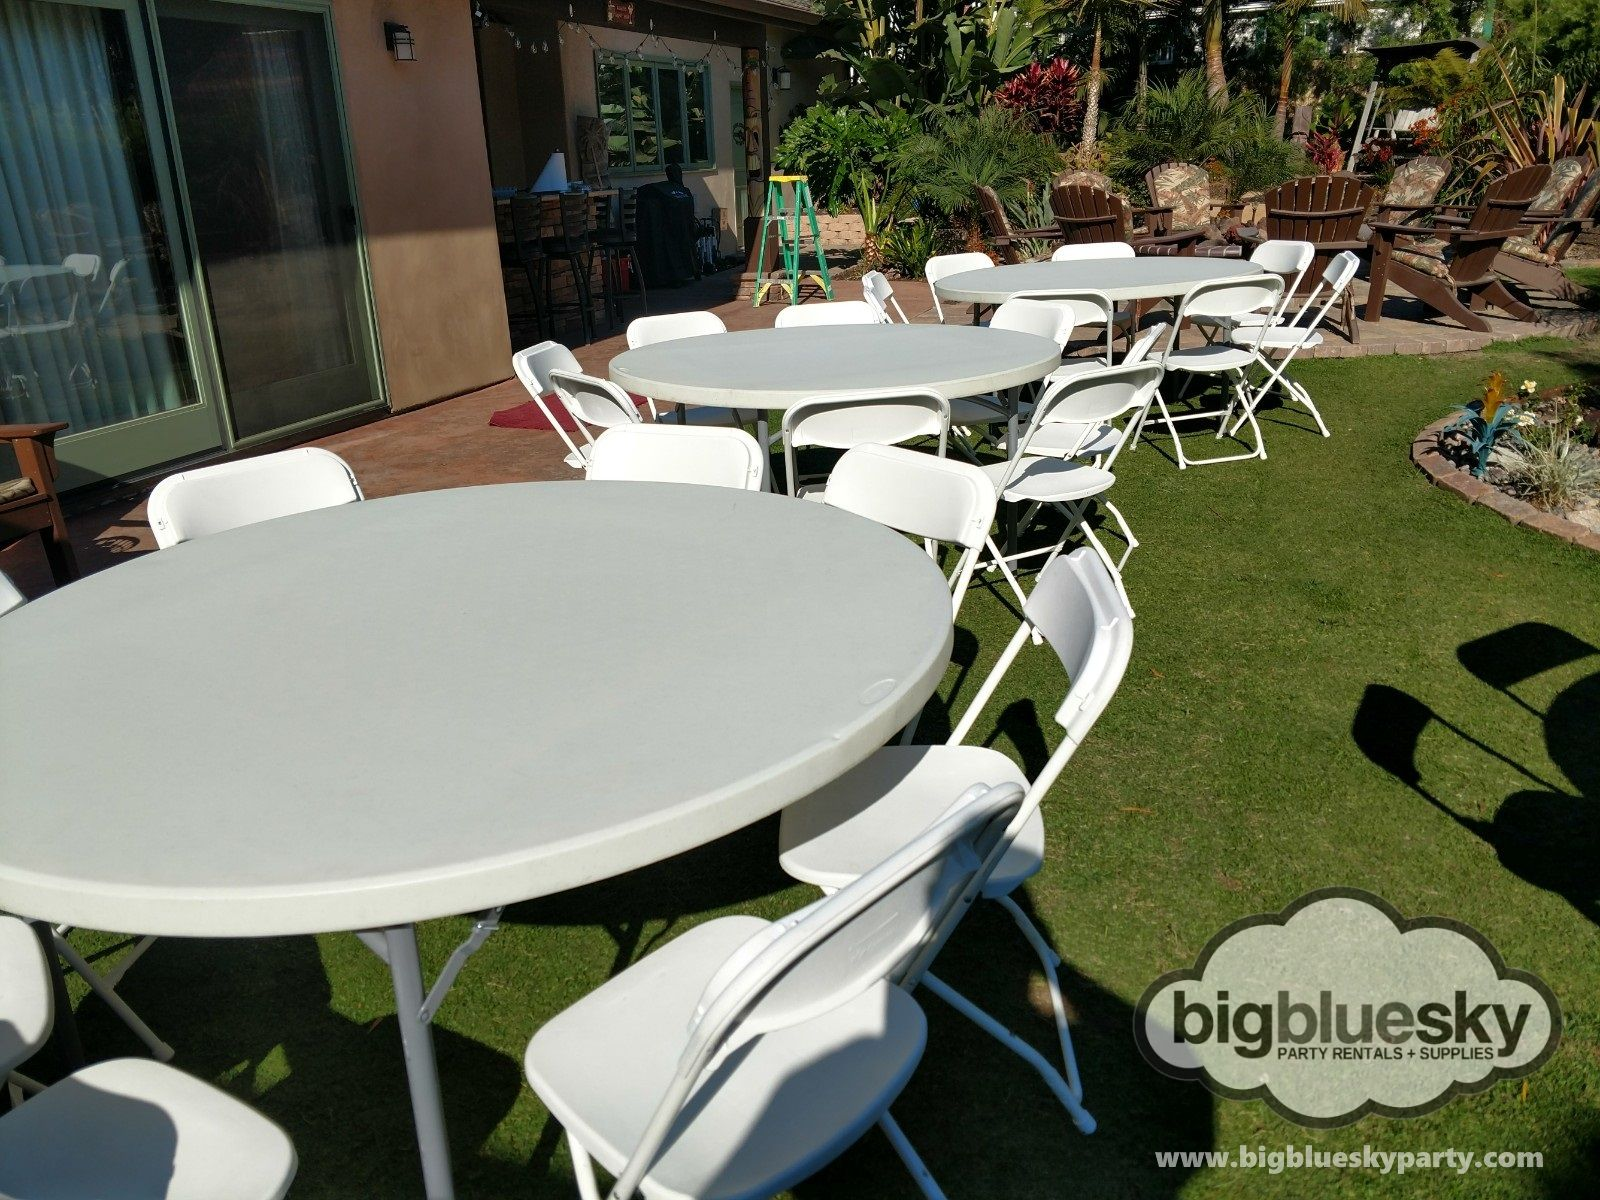 Table Chair Rentals Party Rentals White Folding Chairs Canopy Rentals